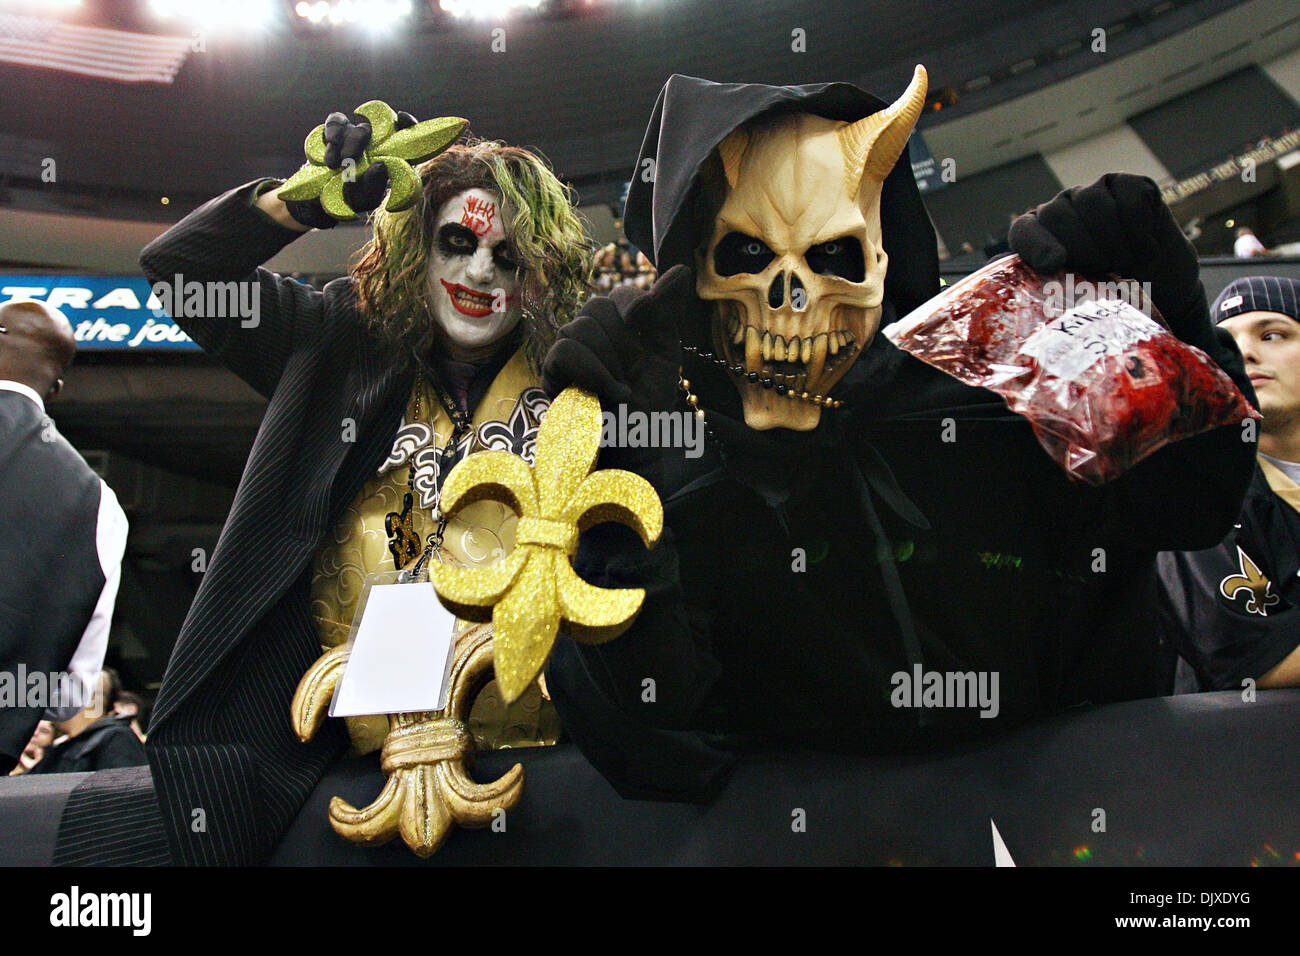 Oct 31, 2010: Record setting fans dress up for Halloween and cheer ...